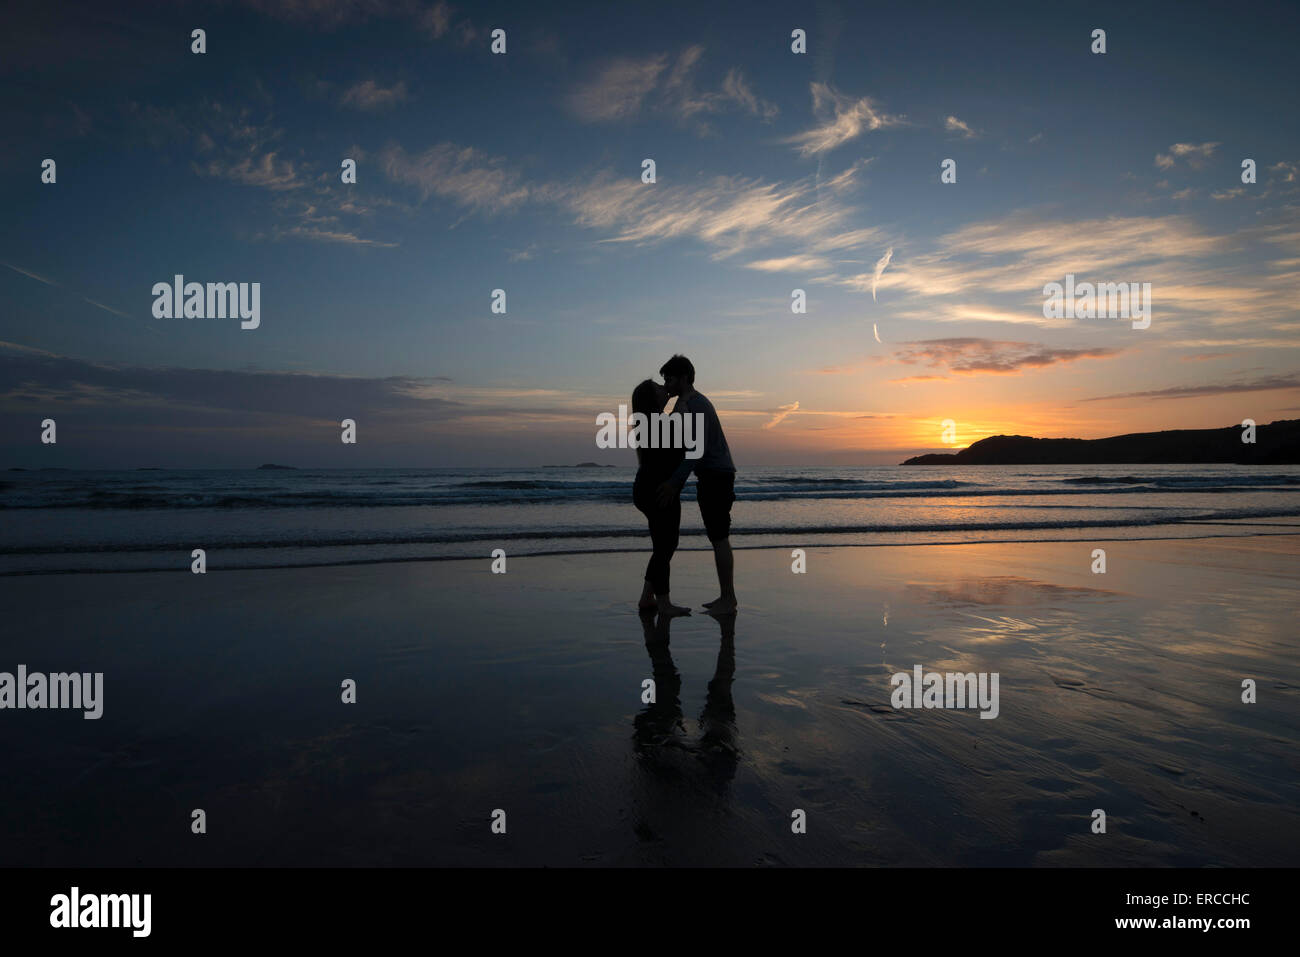 A young couple silhouetted on the beach at sunset on Whitesands Beach in St Davids, Pembrokeshire Wales - Stock Image